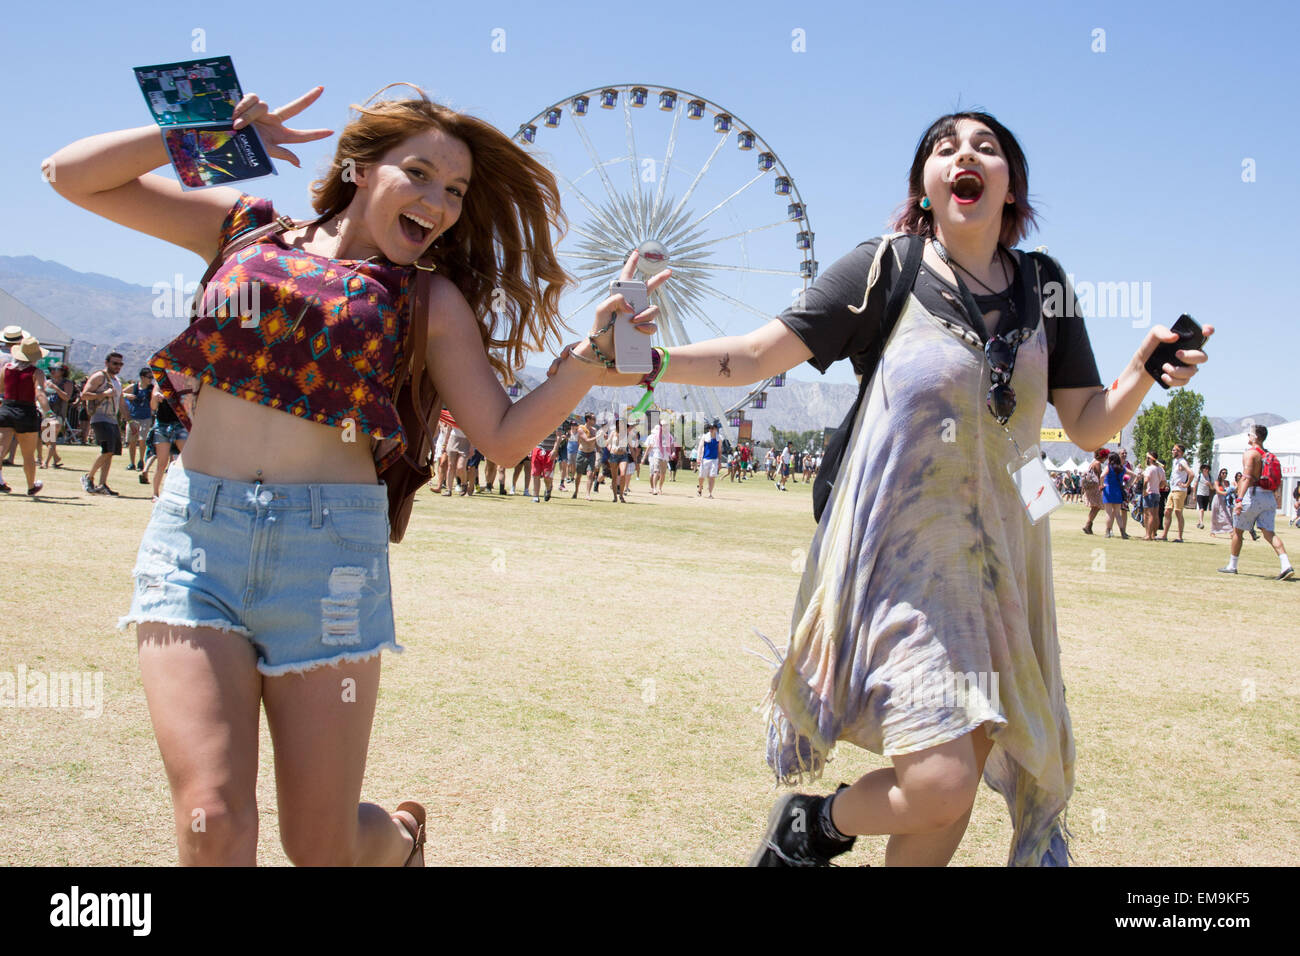 Indio, California, USA. 17th Apr, 2015. Fans stream into the grounds during the three day Coachella Music and Arts - Stock Image